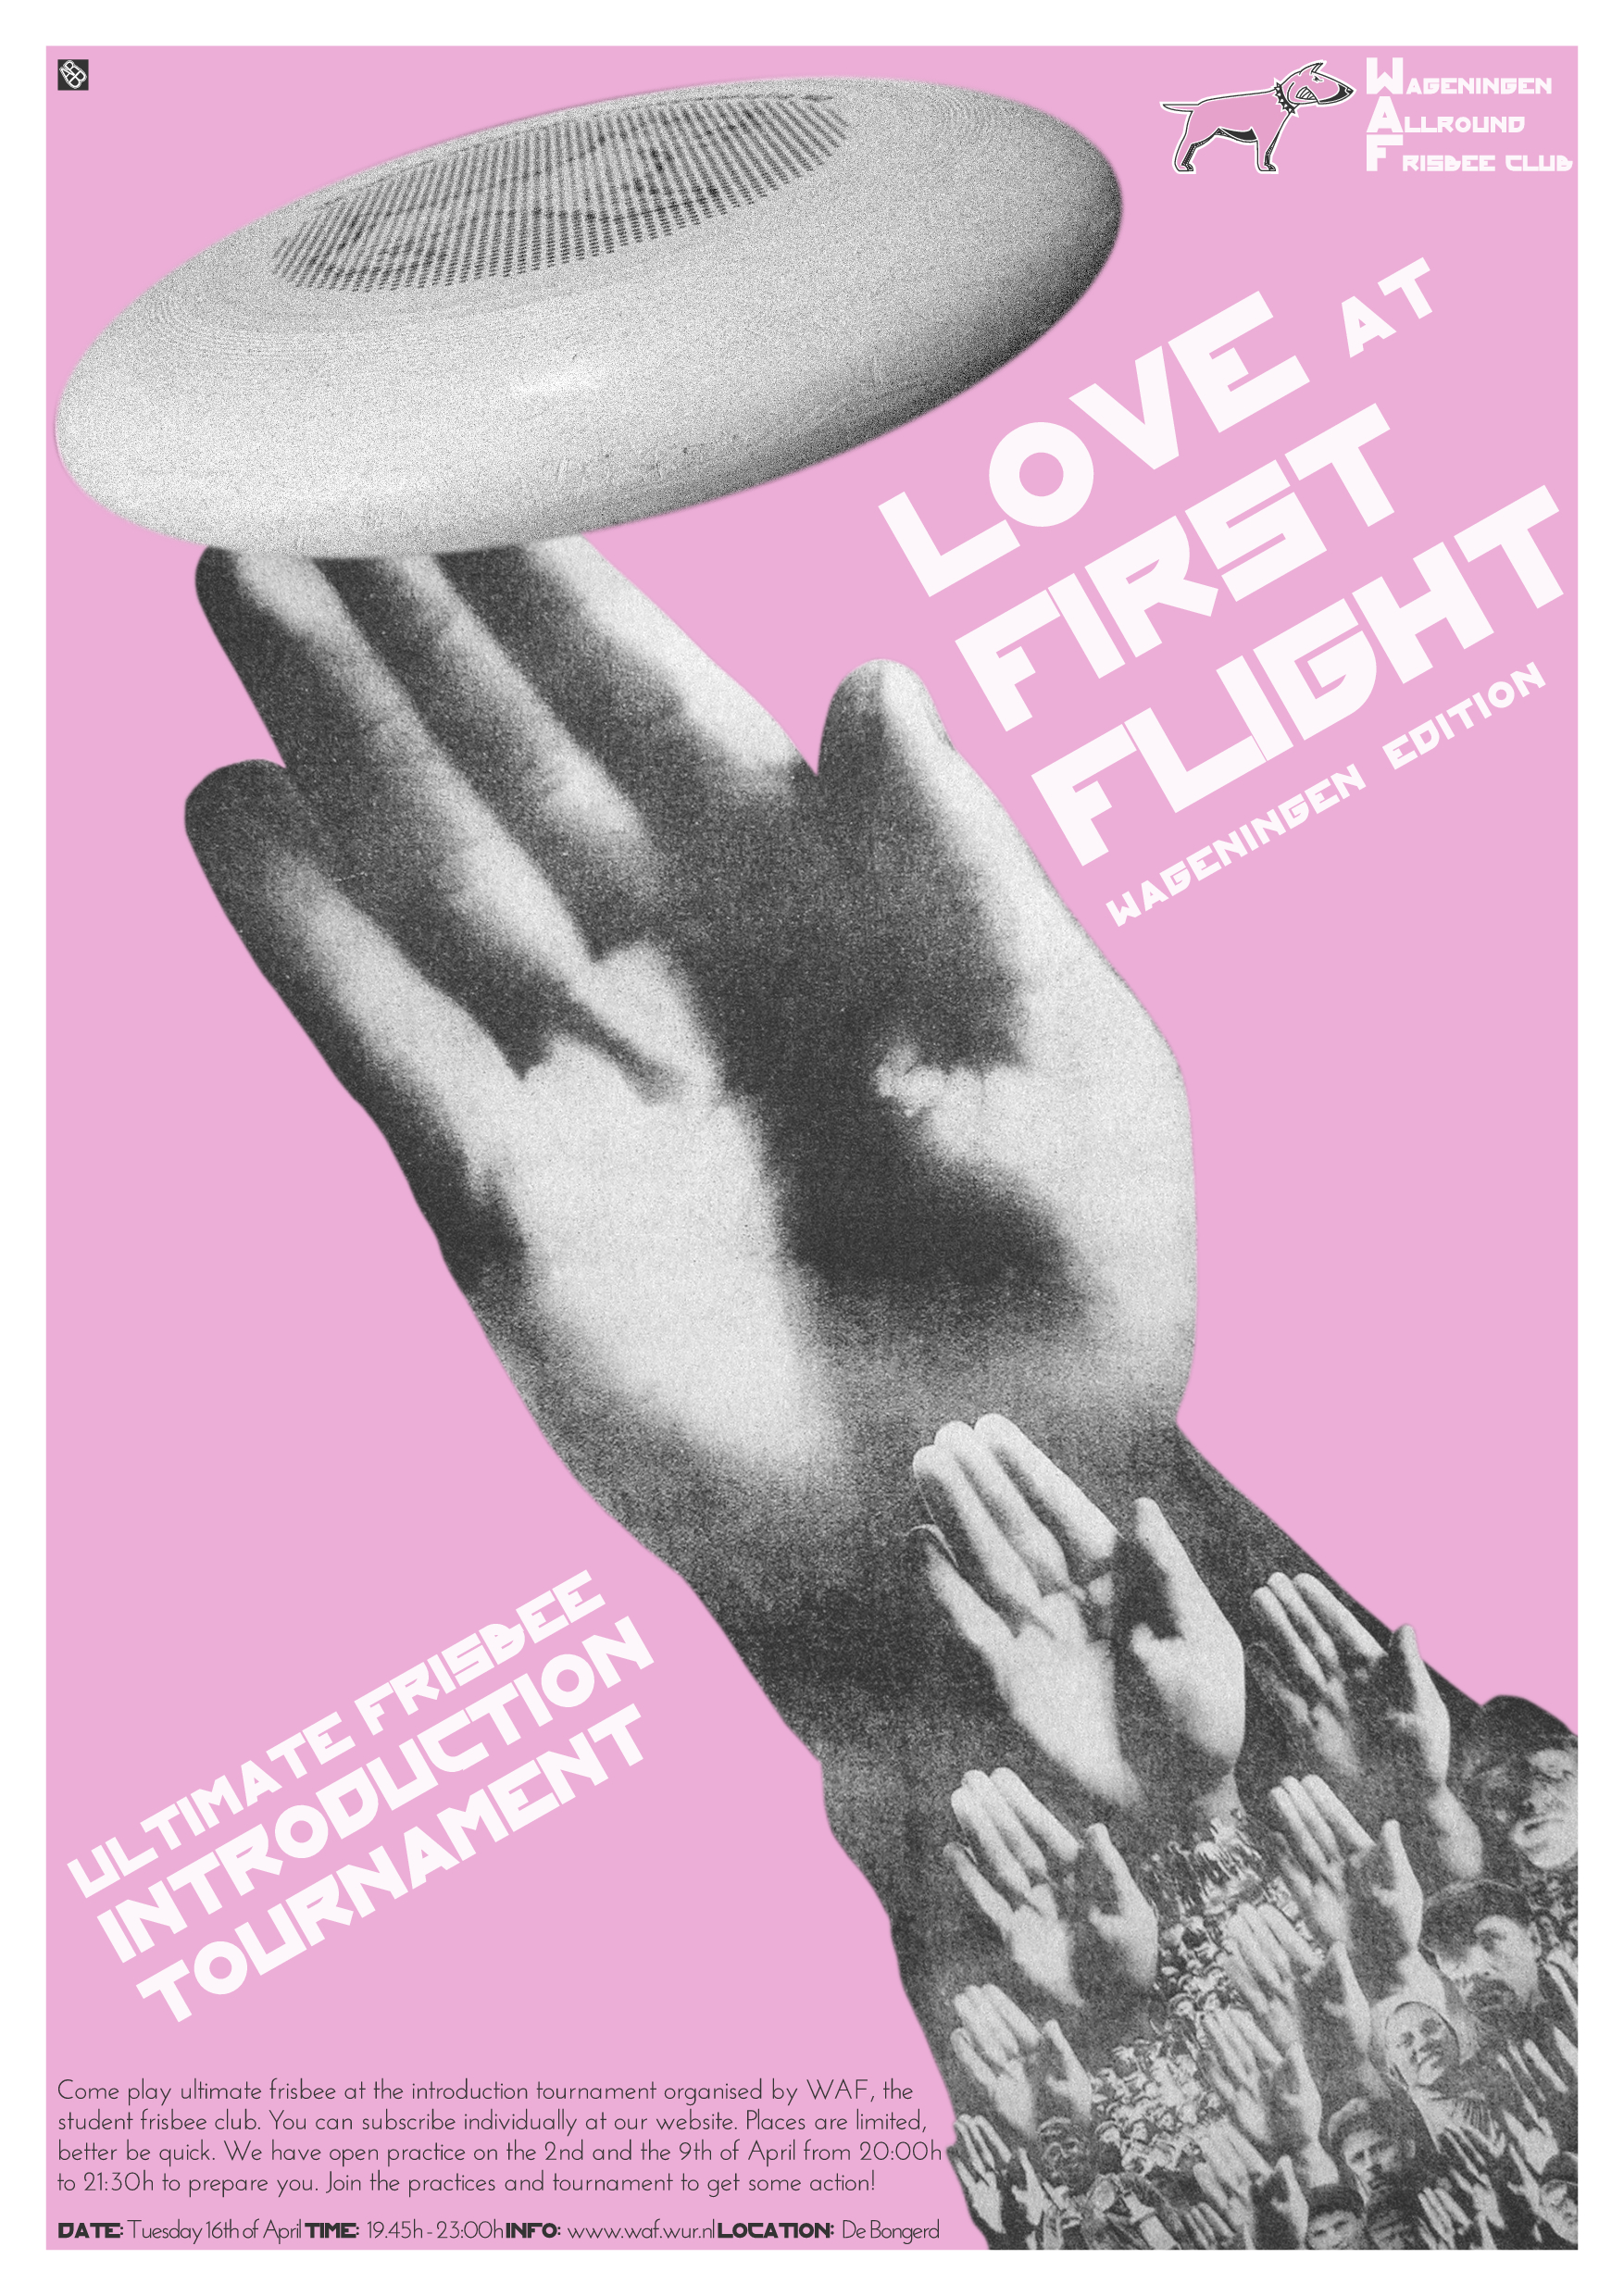 loveatfirstflight